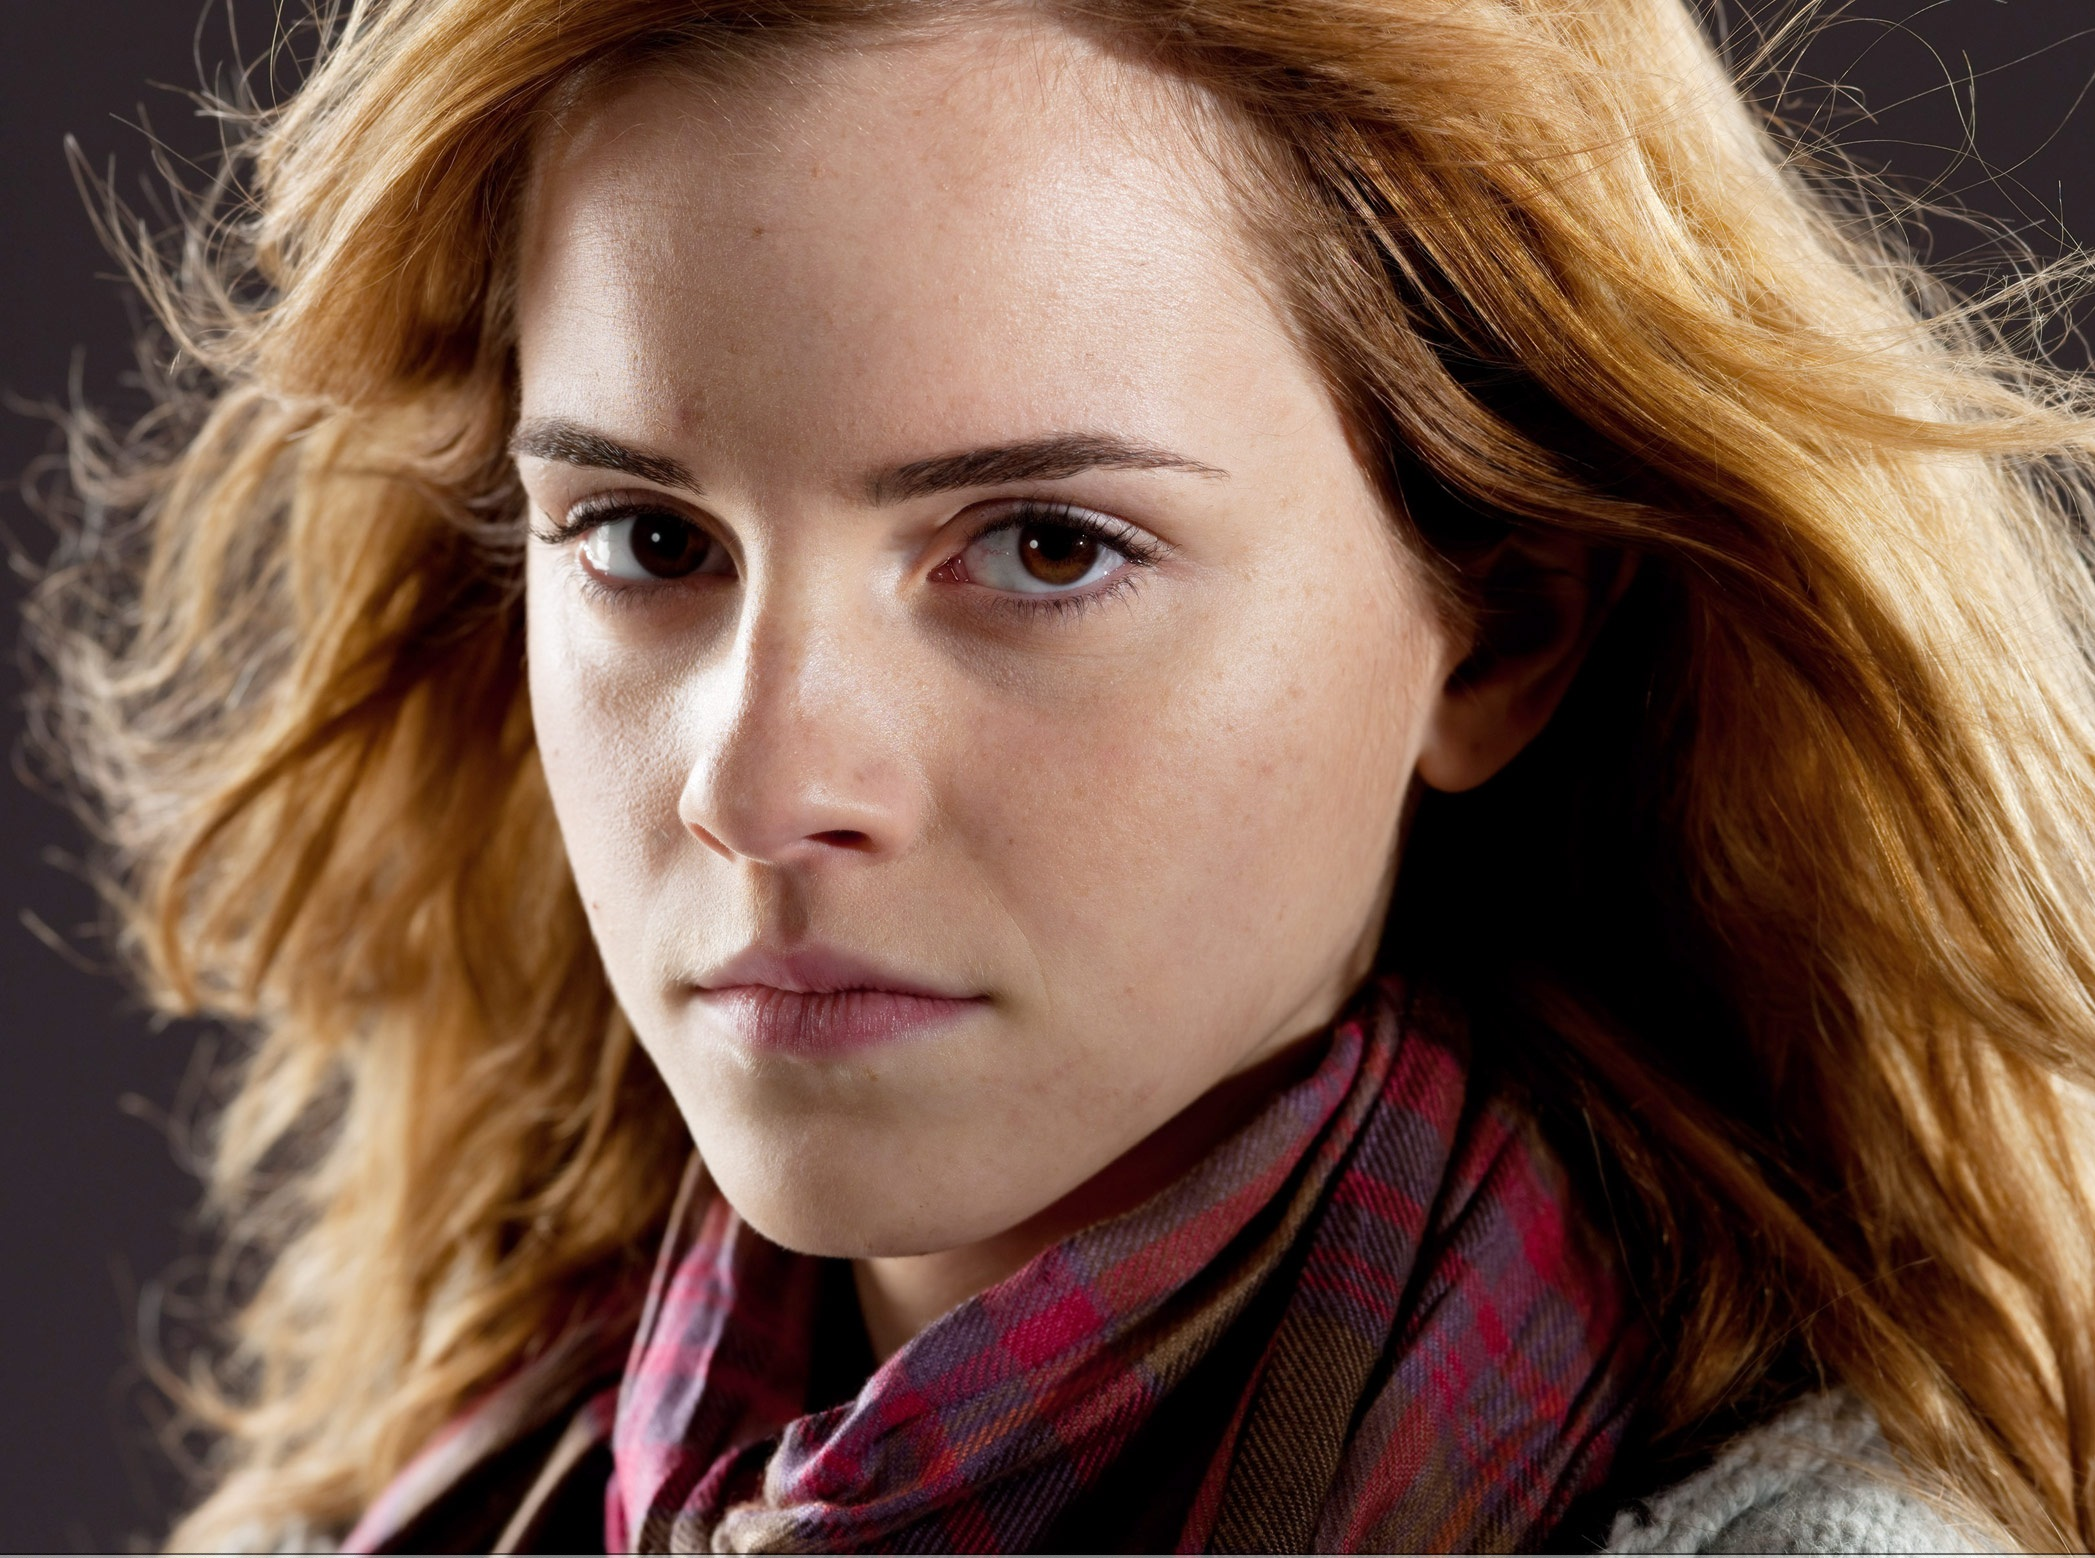 What is her real name Hermione Granger